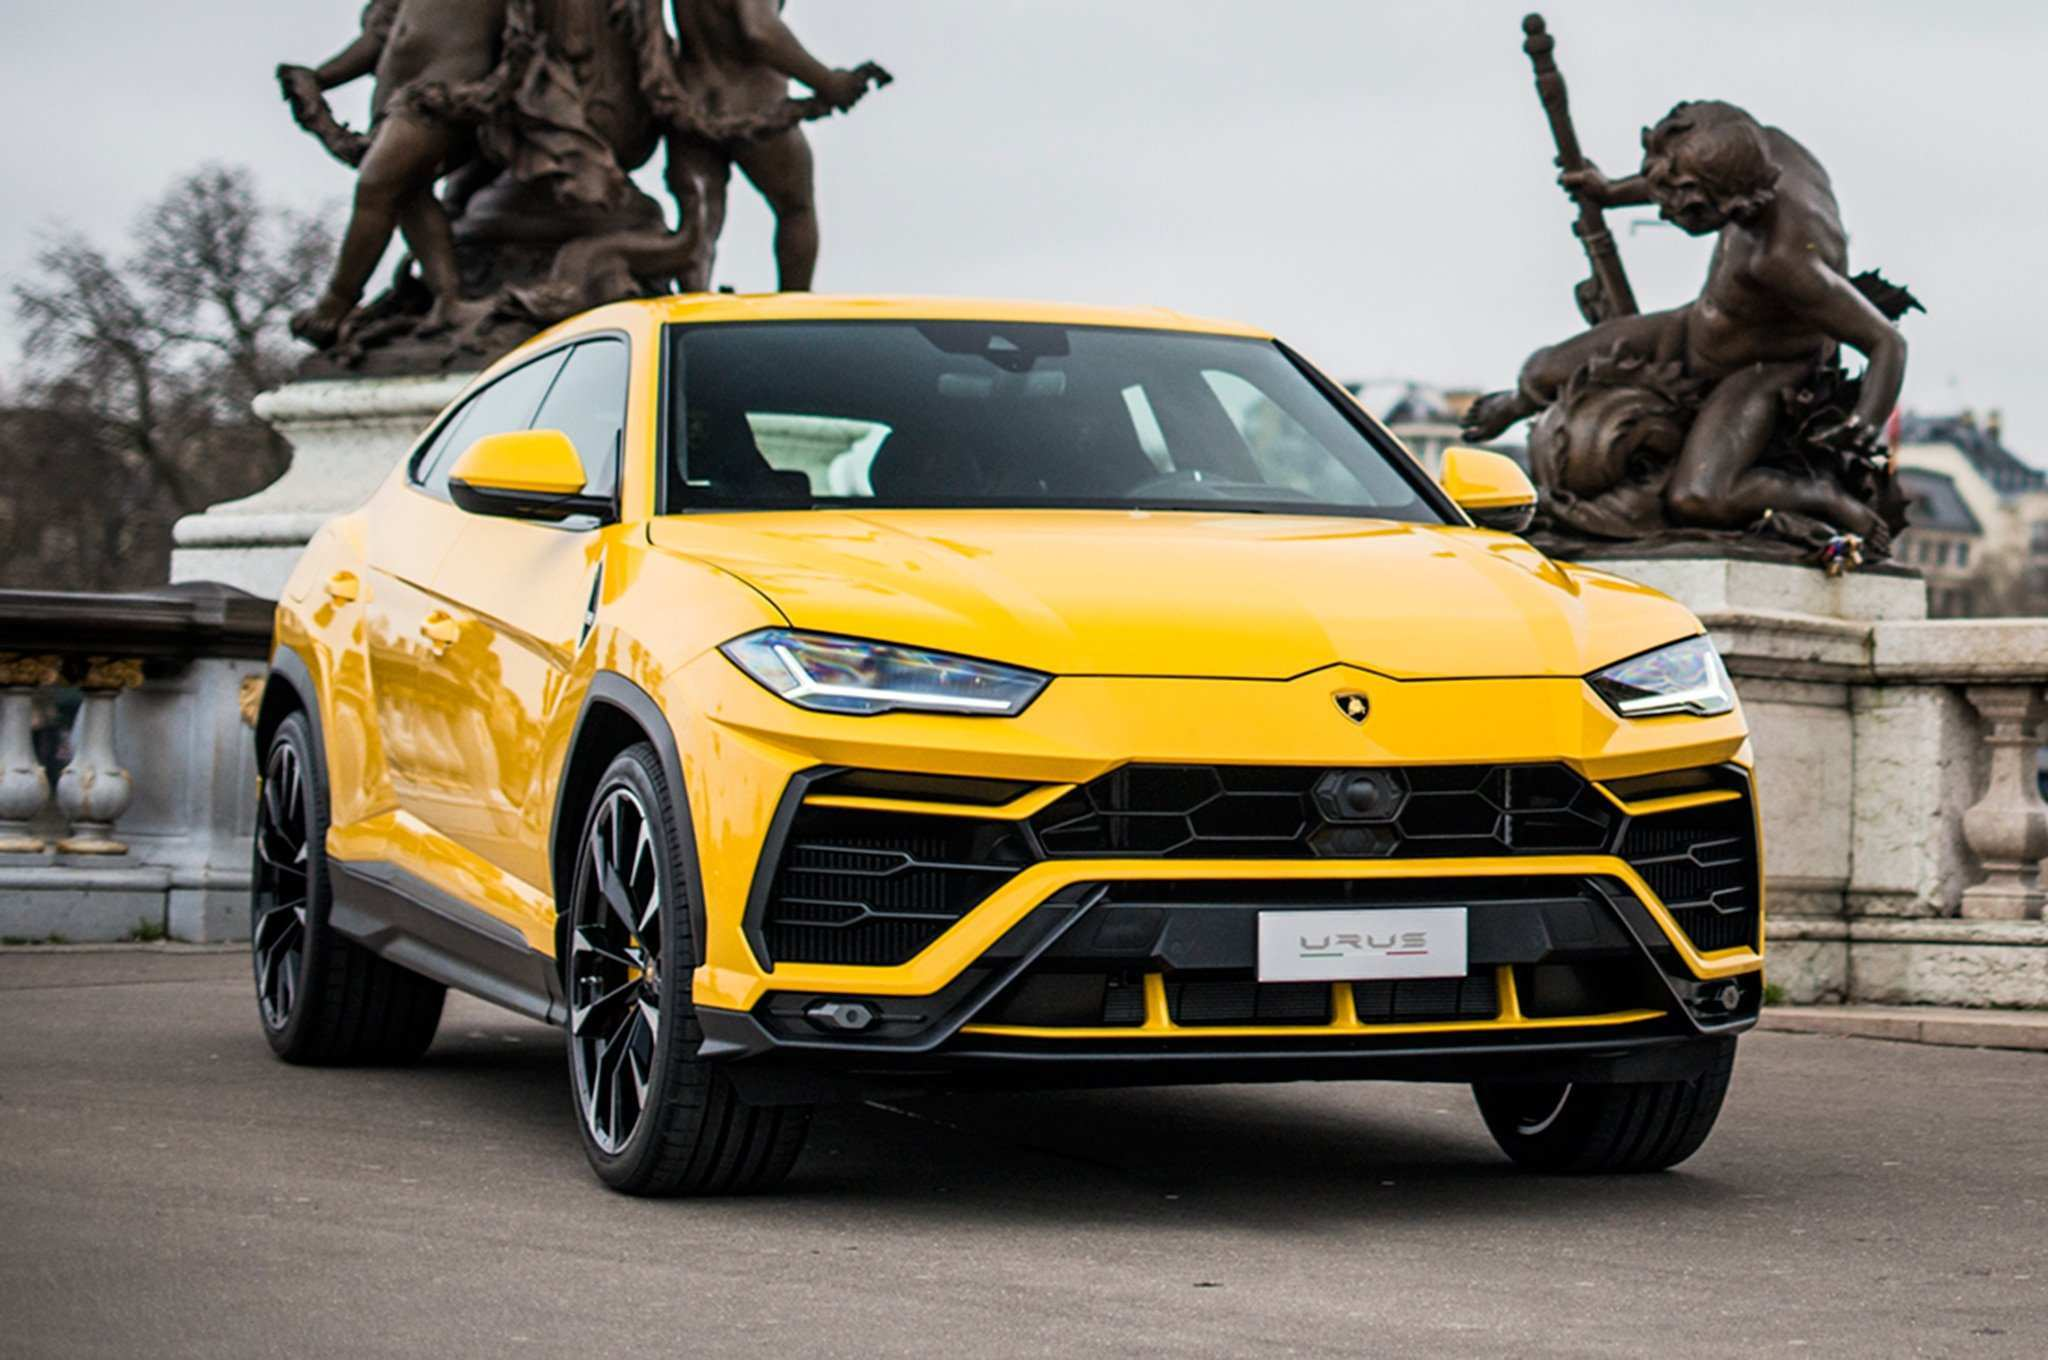 95 The 2019 Lamborghini Urus Rumors